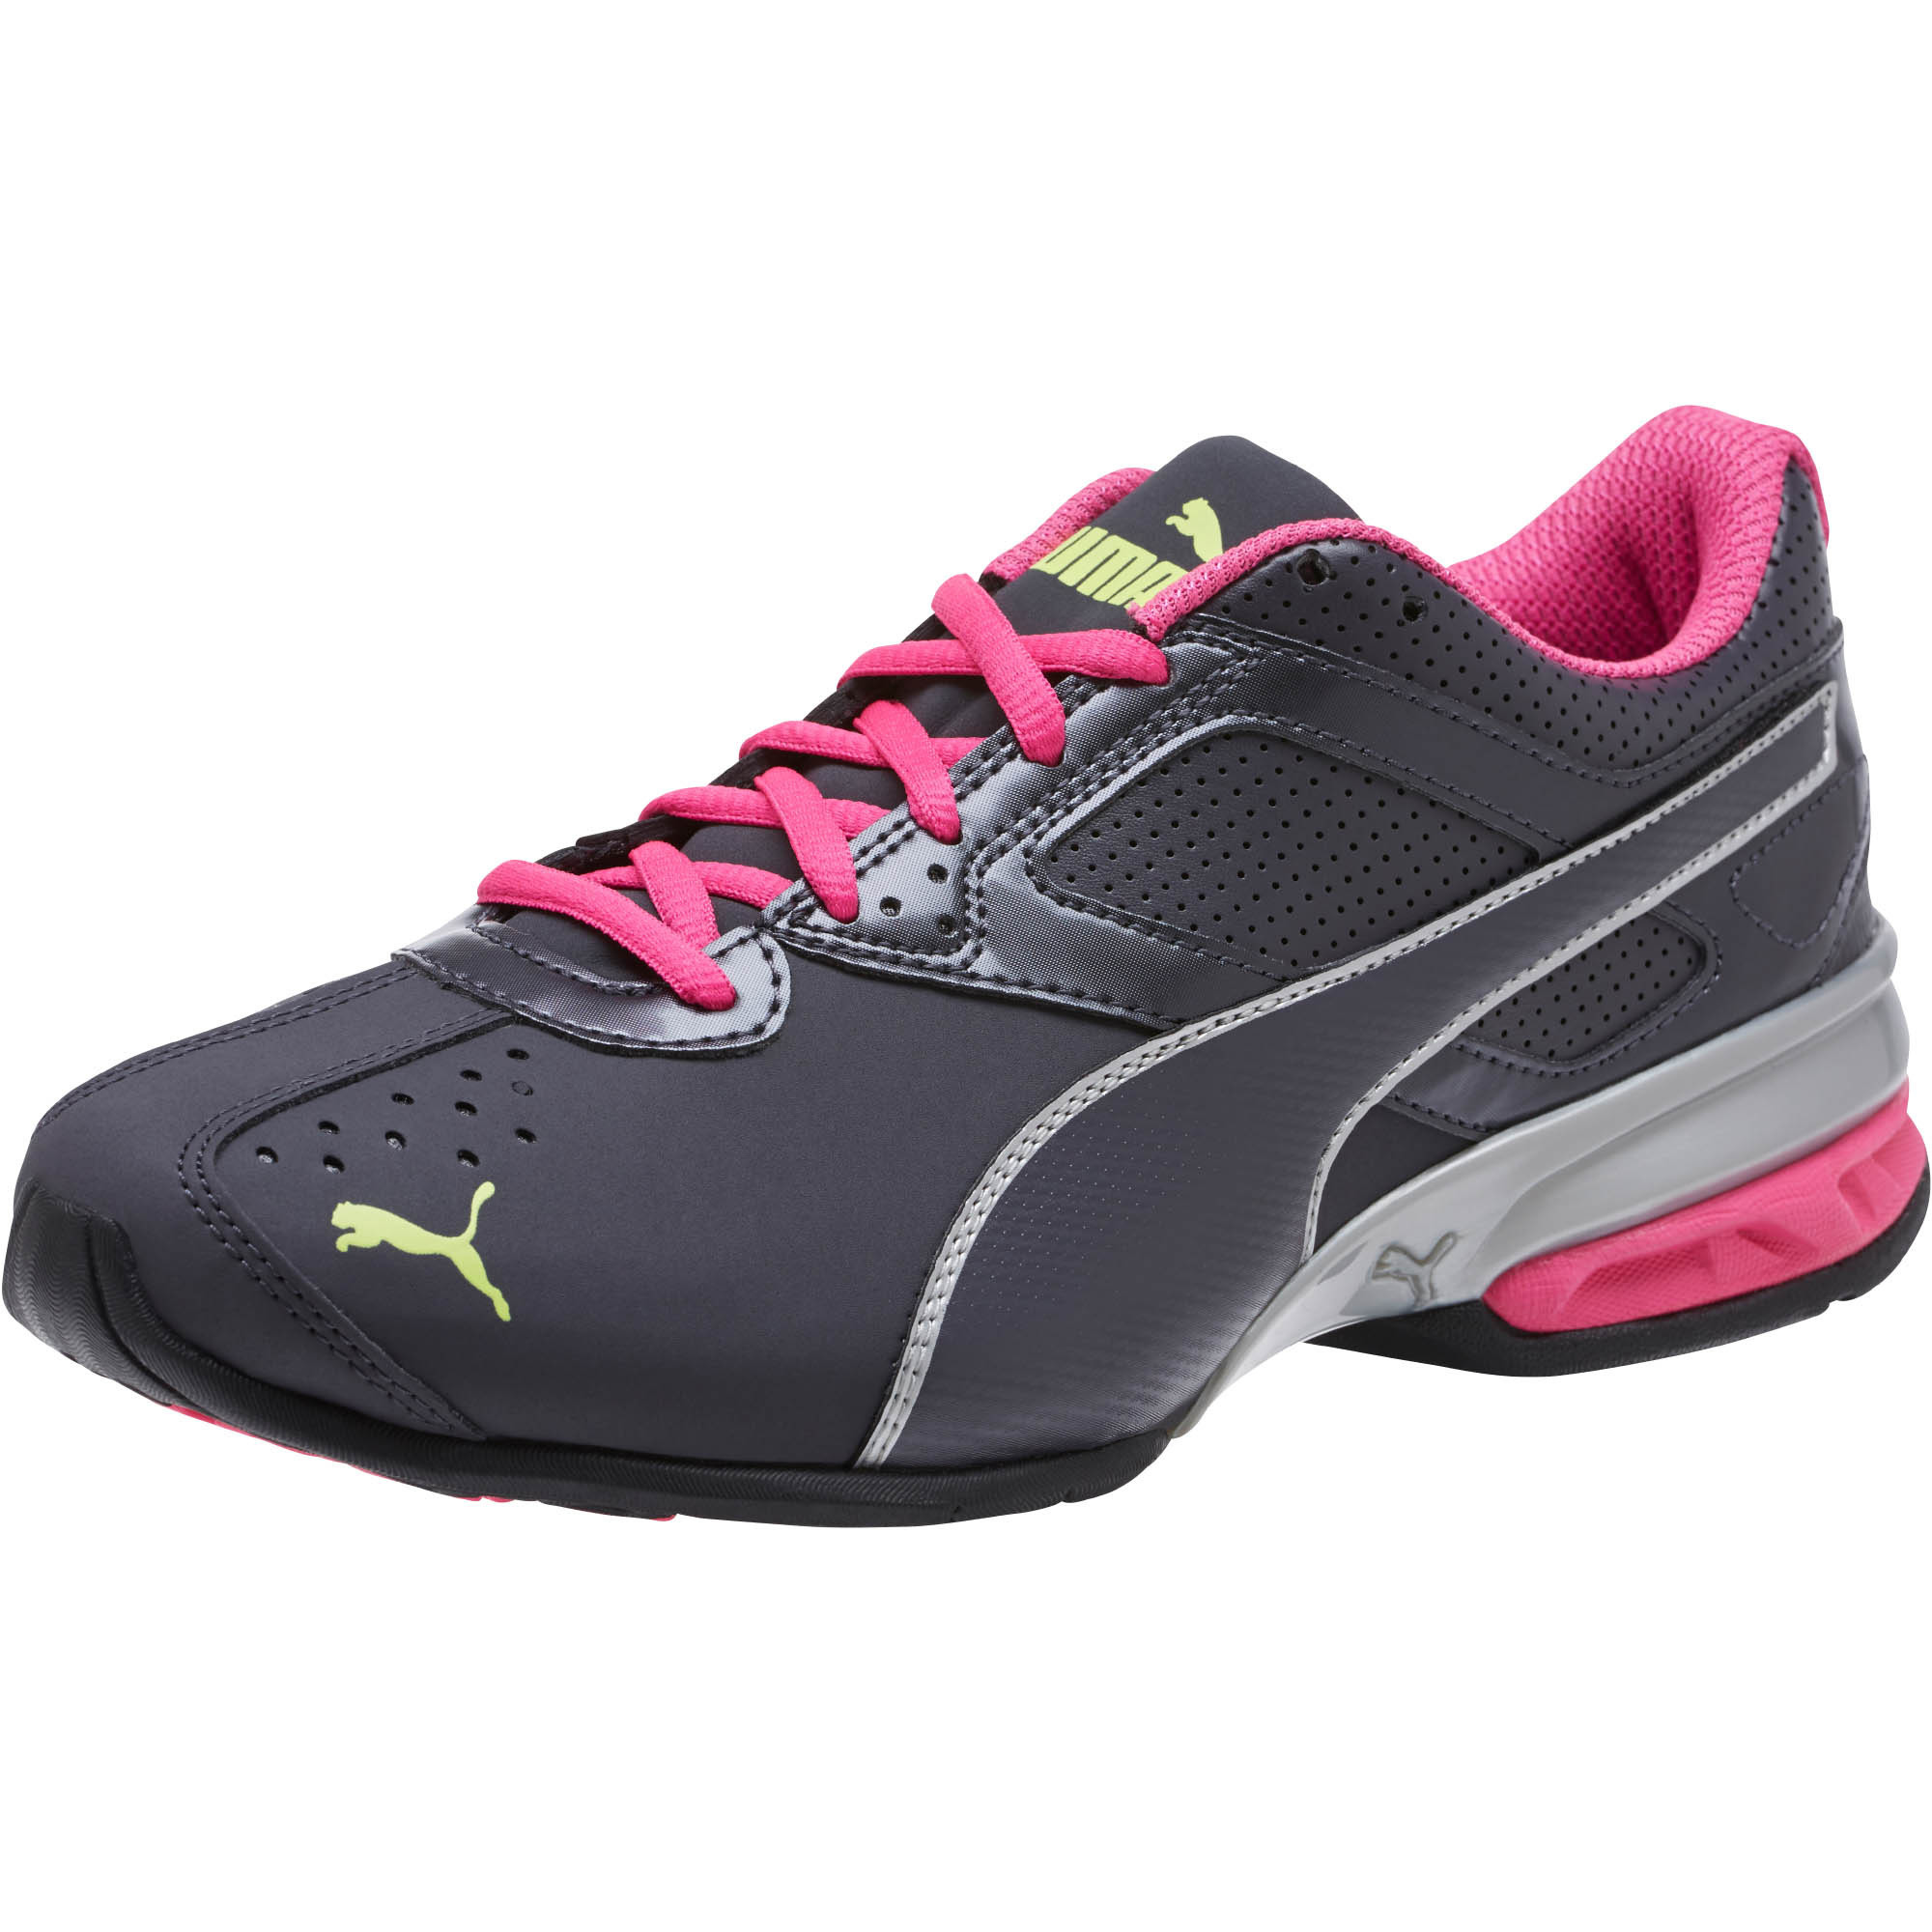 PUMA-Tazon-6-FM-Women-039-s-Sneakers-Women-Shoe-Running thumbnail 18